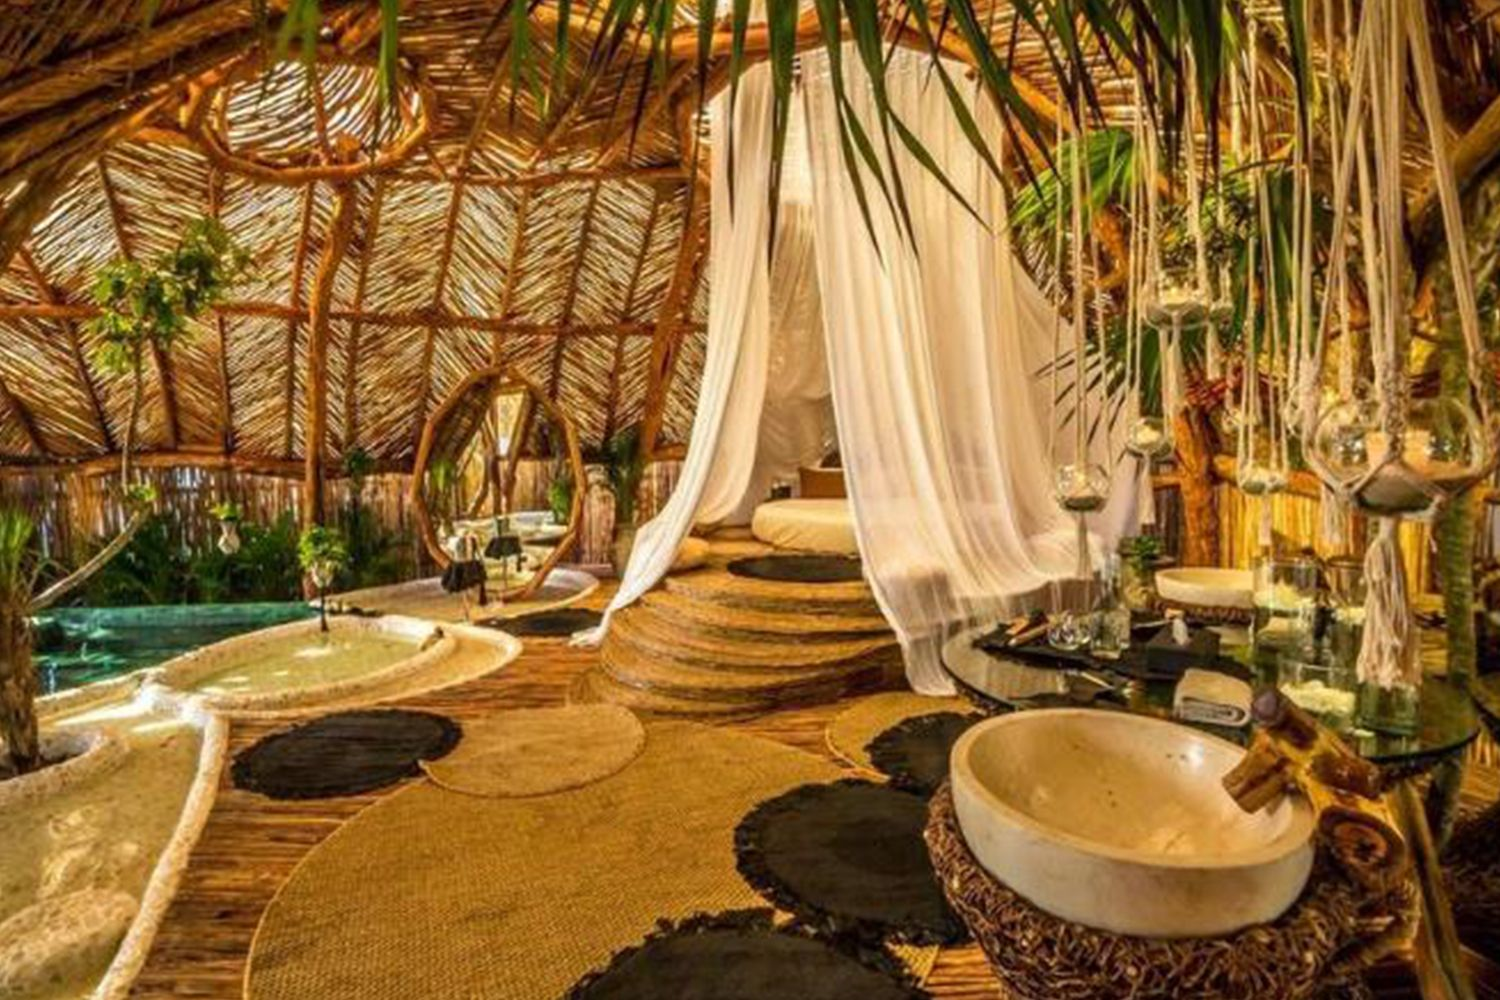 16 Most Unique Hotels in the World - Most Outrageous and ...